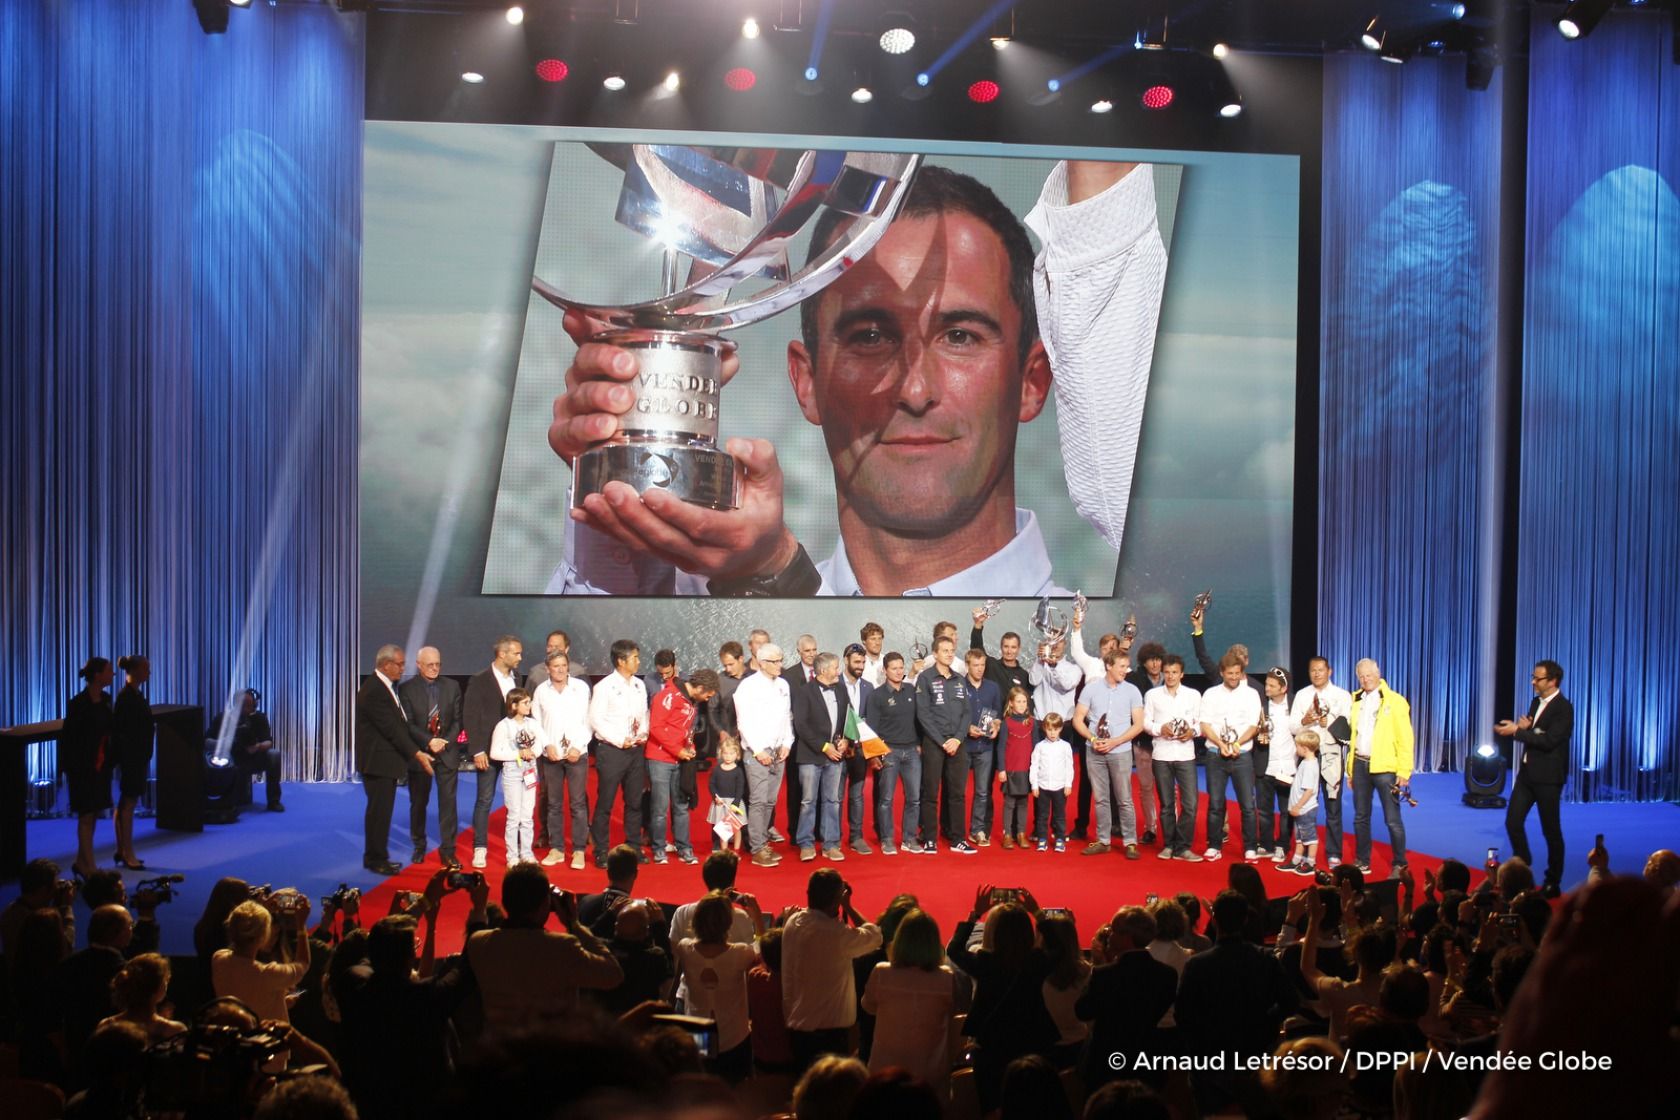 All 29 skippers and officials during the prize ceremony of the sailing race circumnavigation Vendee Globe, in Les Sables d'Olonne, west France, on May 13th, 2017 - Photo Arnaud Letresor / DPPI / Vendee Globe